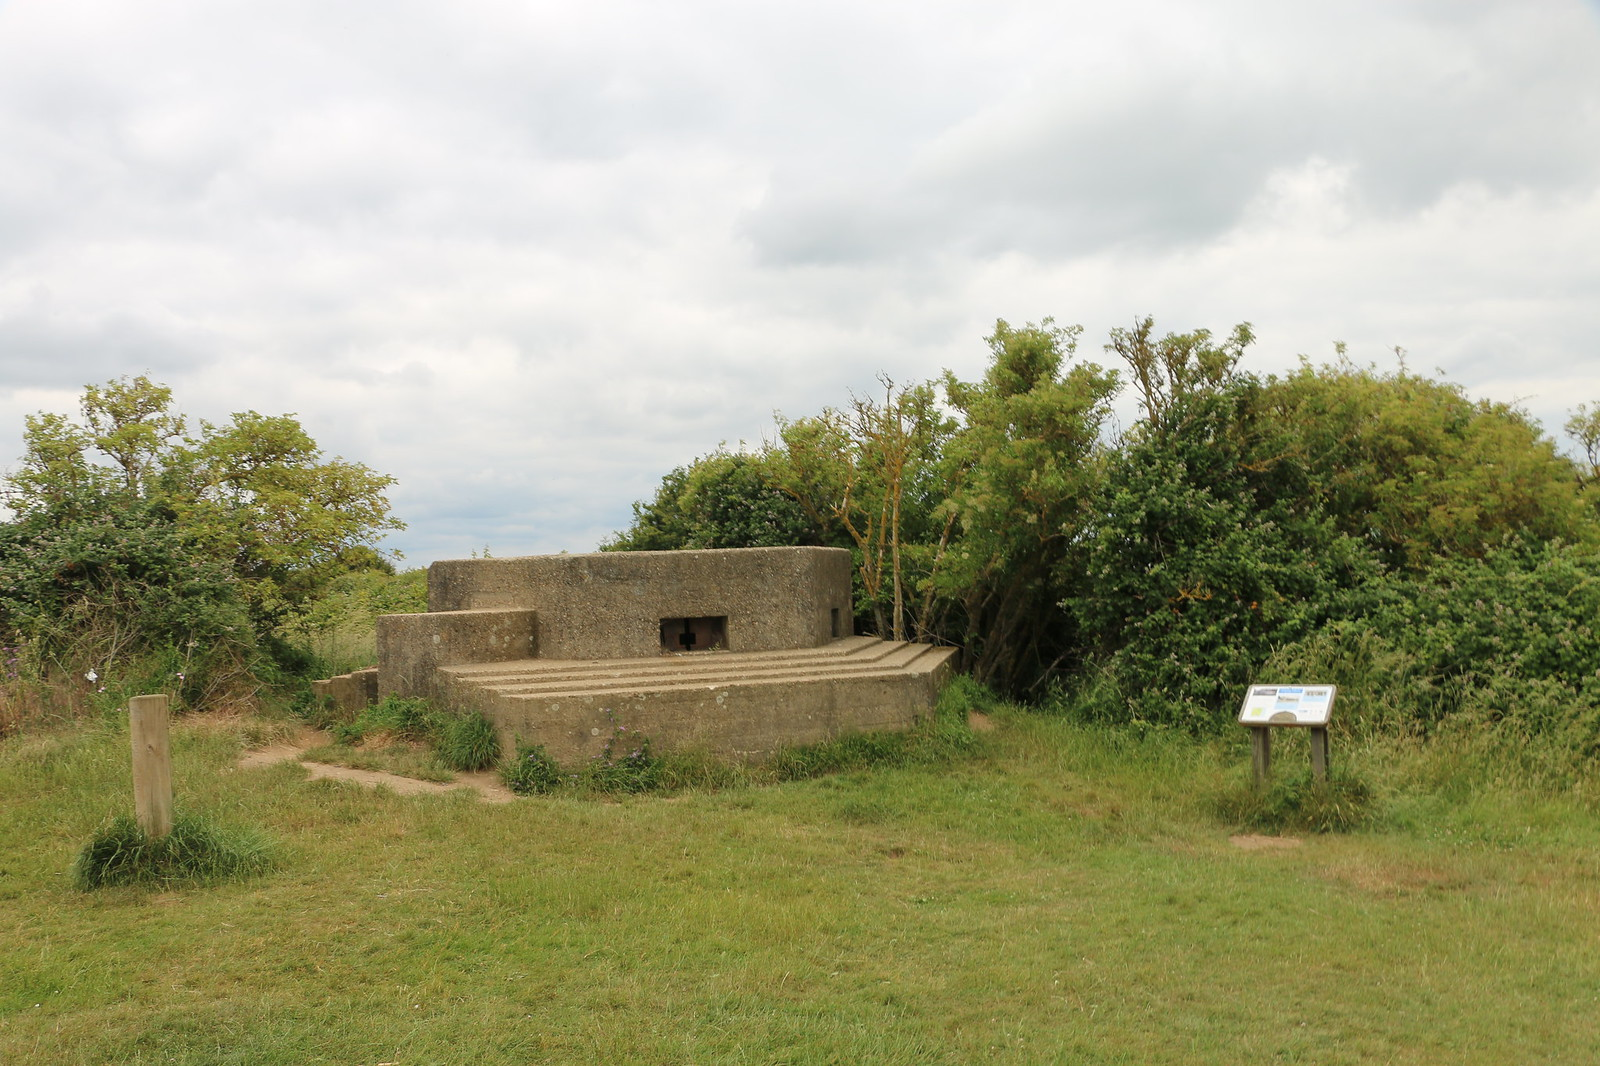 Pillbox, The Naze, Walton-on-the-Naze